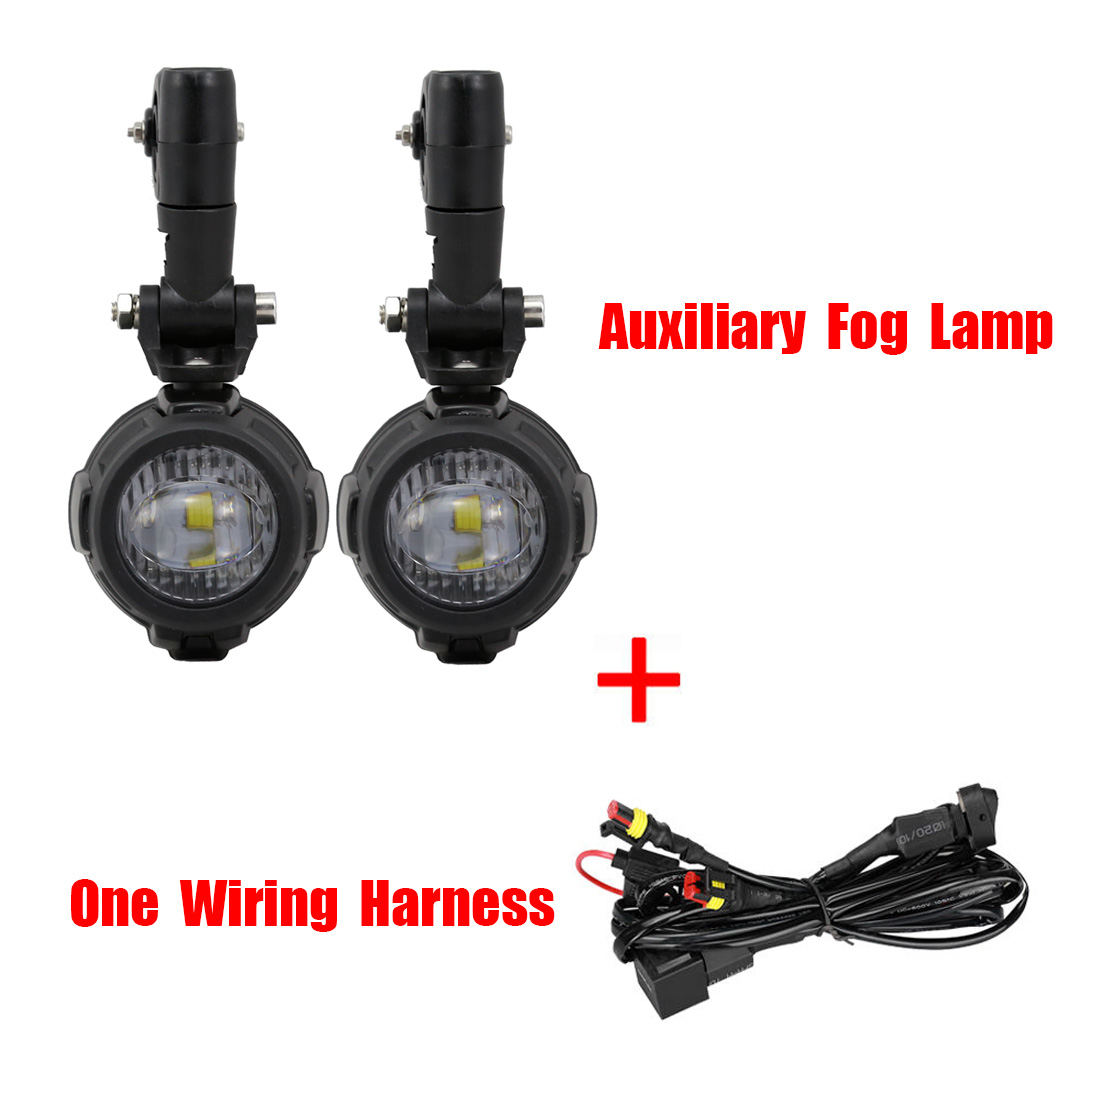 Universal Fog Light Wiring Harness Ebay Library Curving Led Diagram For Use Spot Auxiliary 40a Switch Bmw Motorcycle Kit